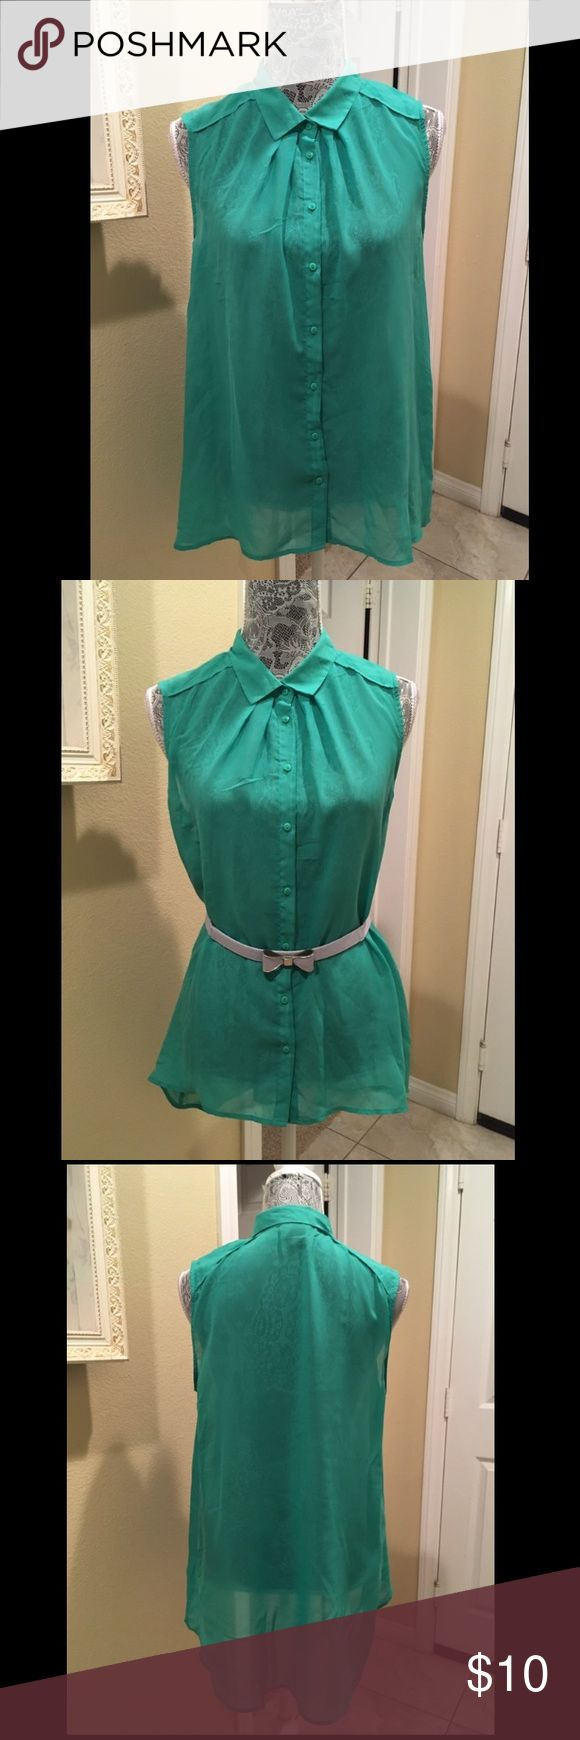 H&M Green Short Sleeve Blouse Size 12 Light wear. Comes from a smoke free home. Belt is NOT included. Size US 12. H&M Tops Button Down Shirts